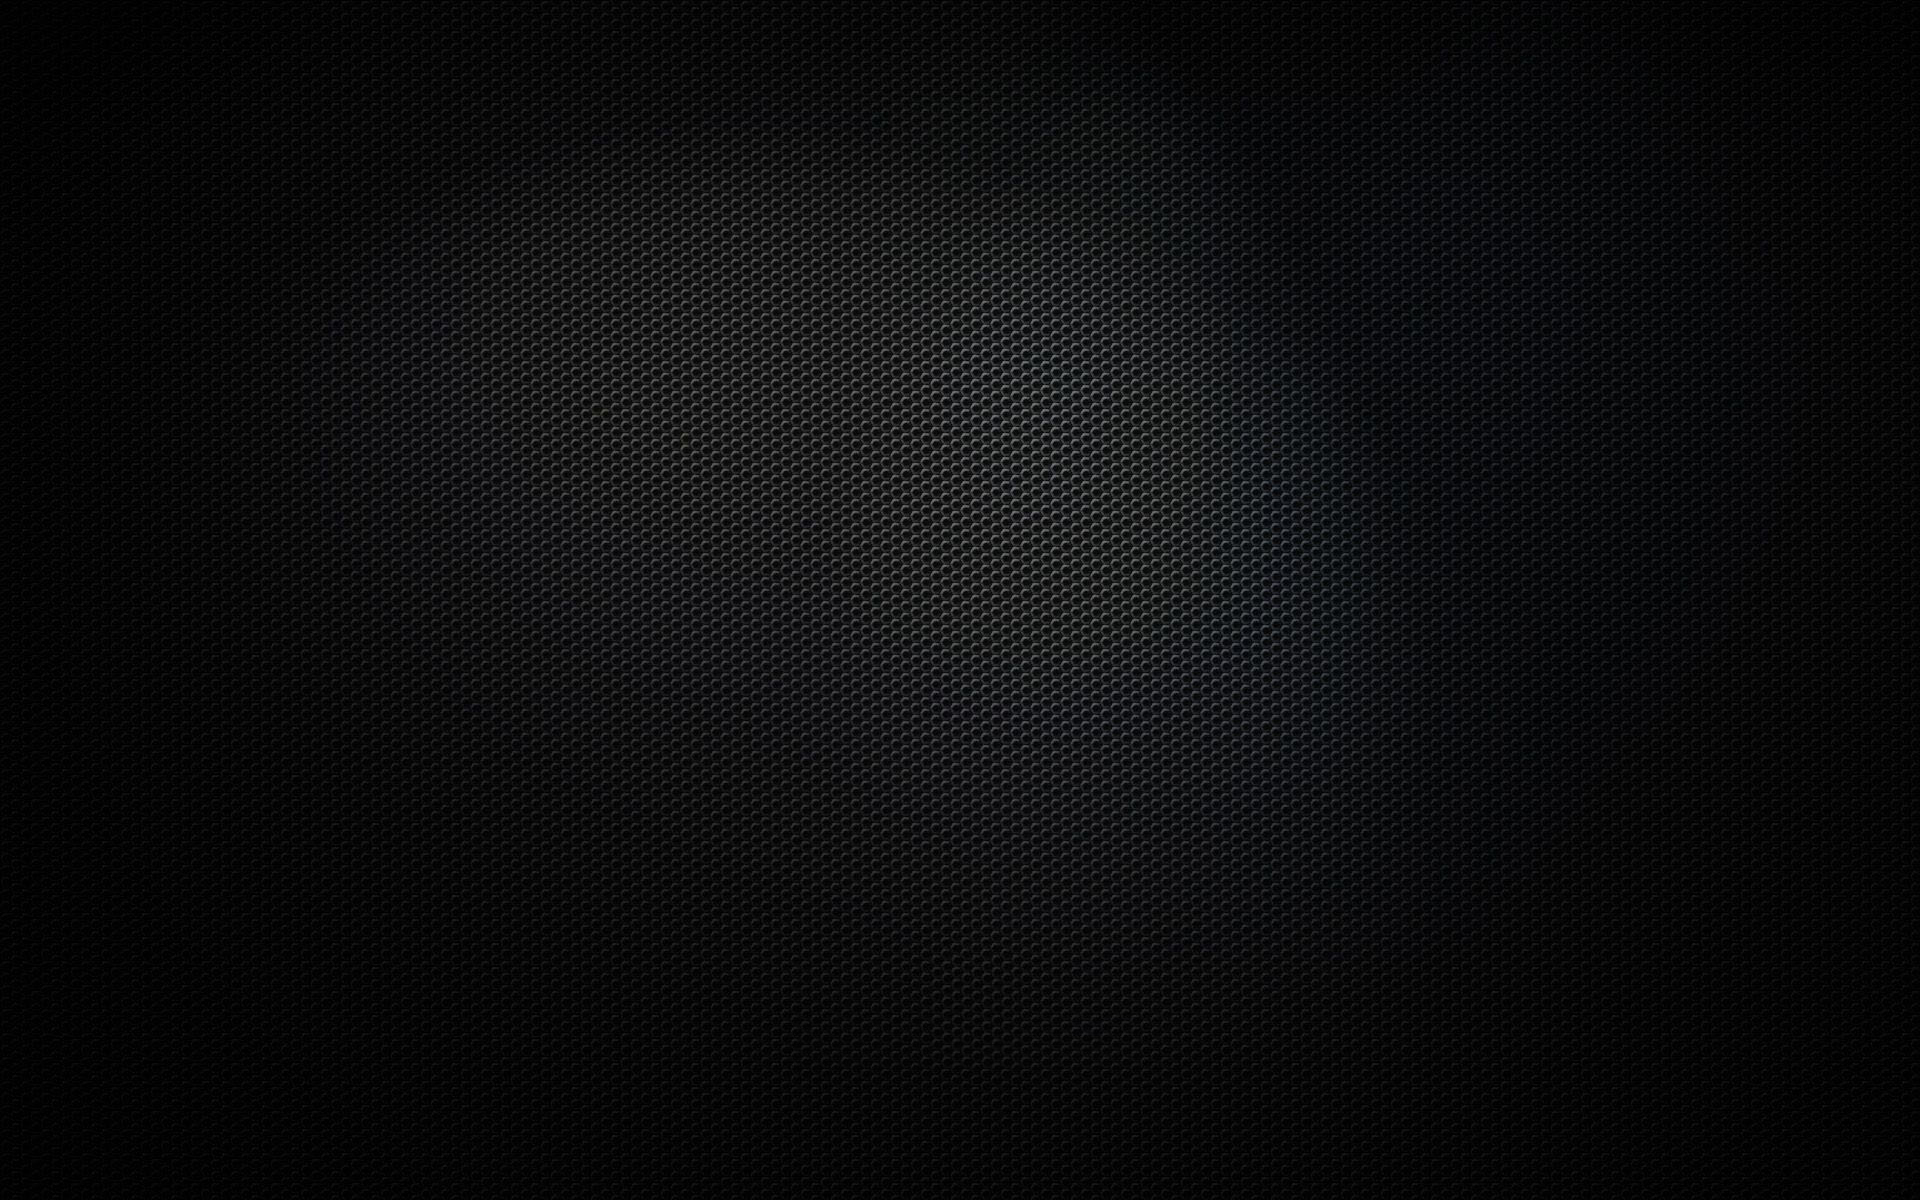 Wallpapers Products Carbon Wallpaper 1920x1200